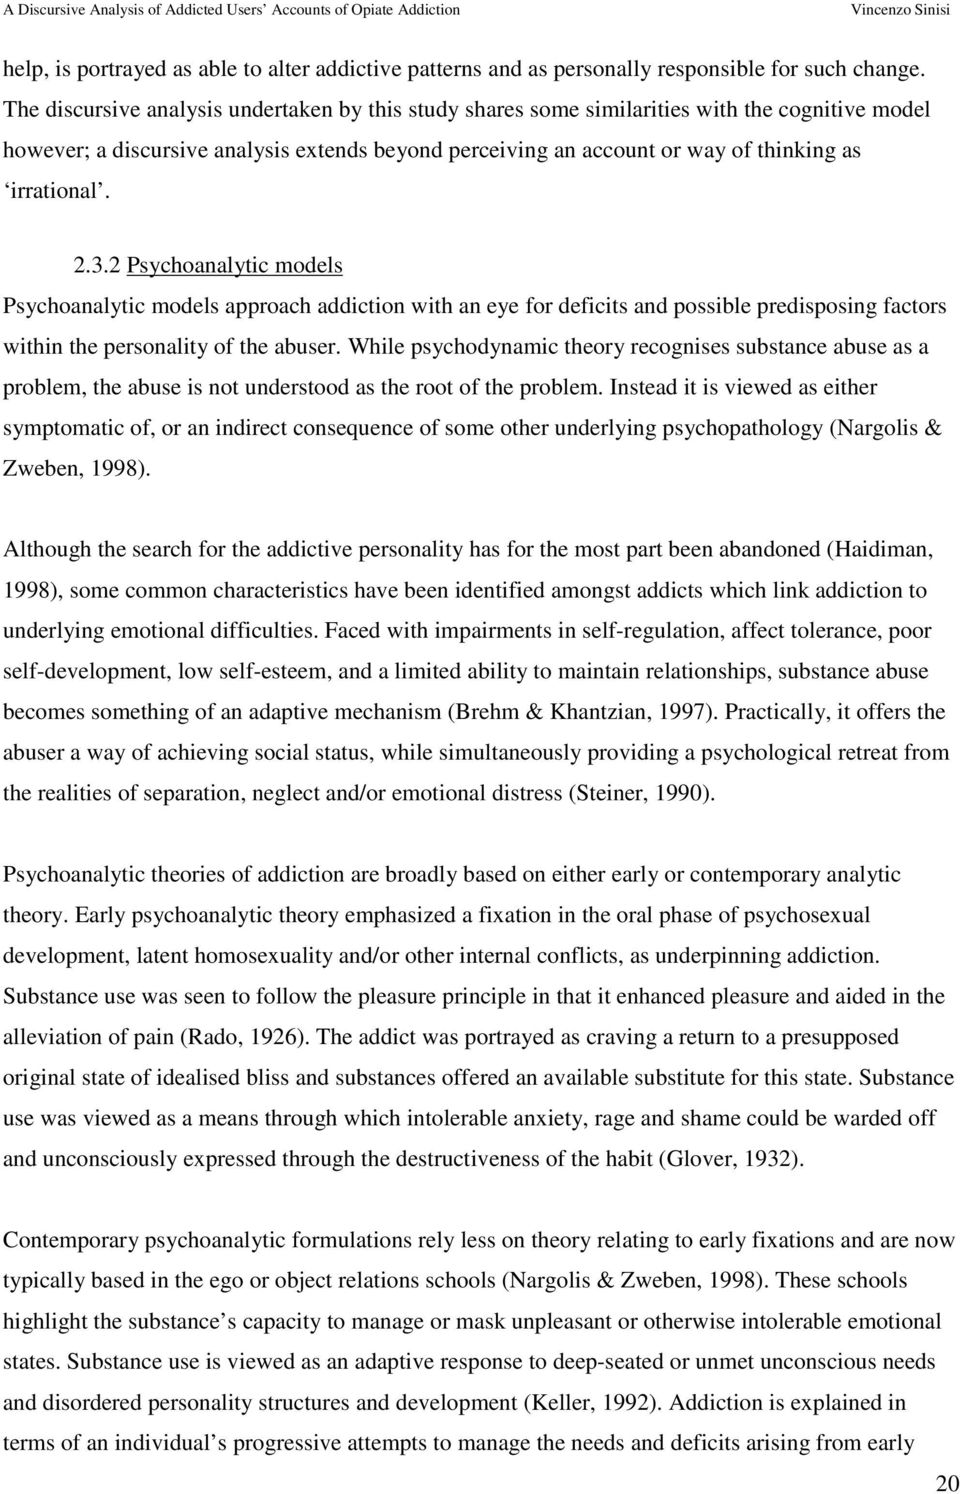 2.3.2 Psychoanalytic models Psychoanalytic models approach addiction with an eye for deficits and possible predisposing factors within the personality of the abuser.